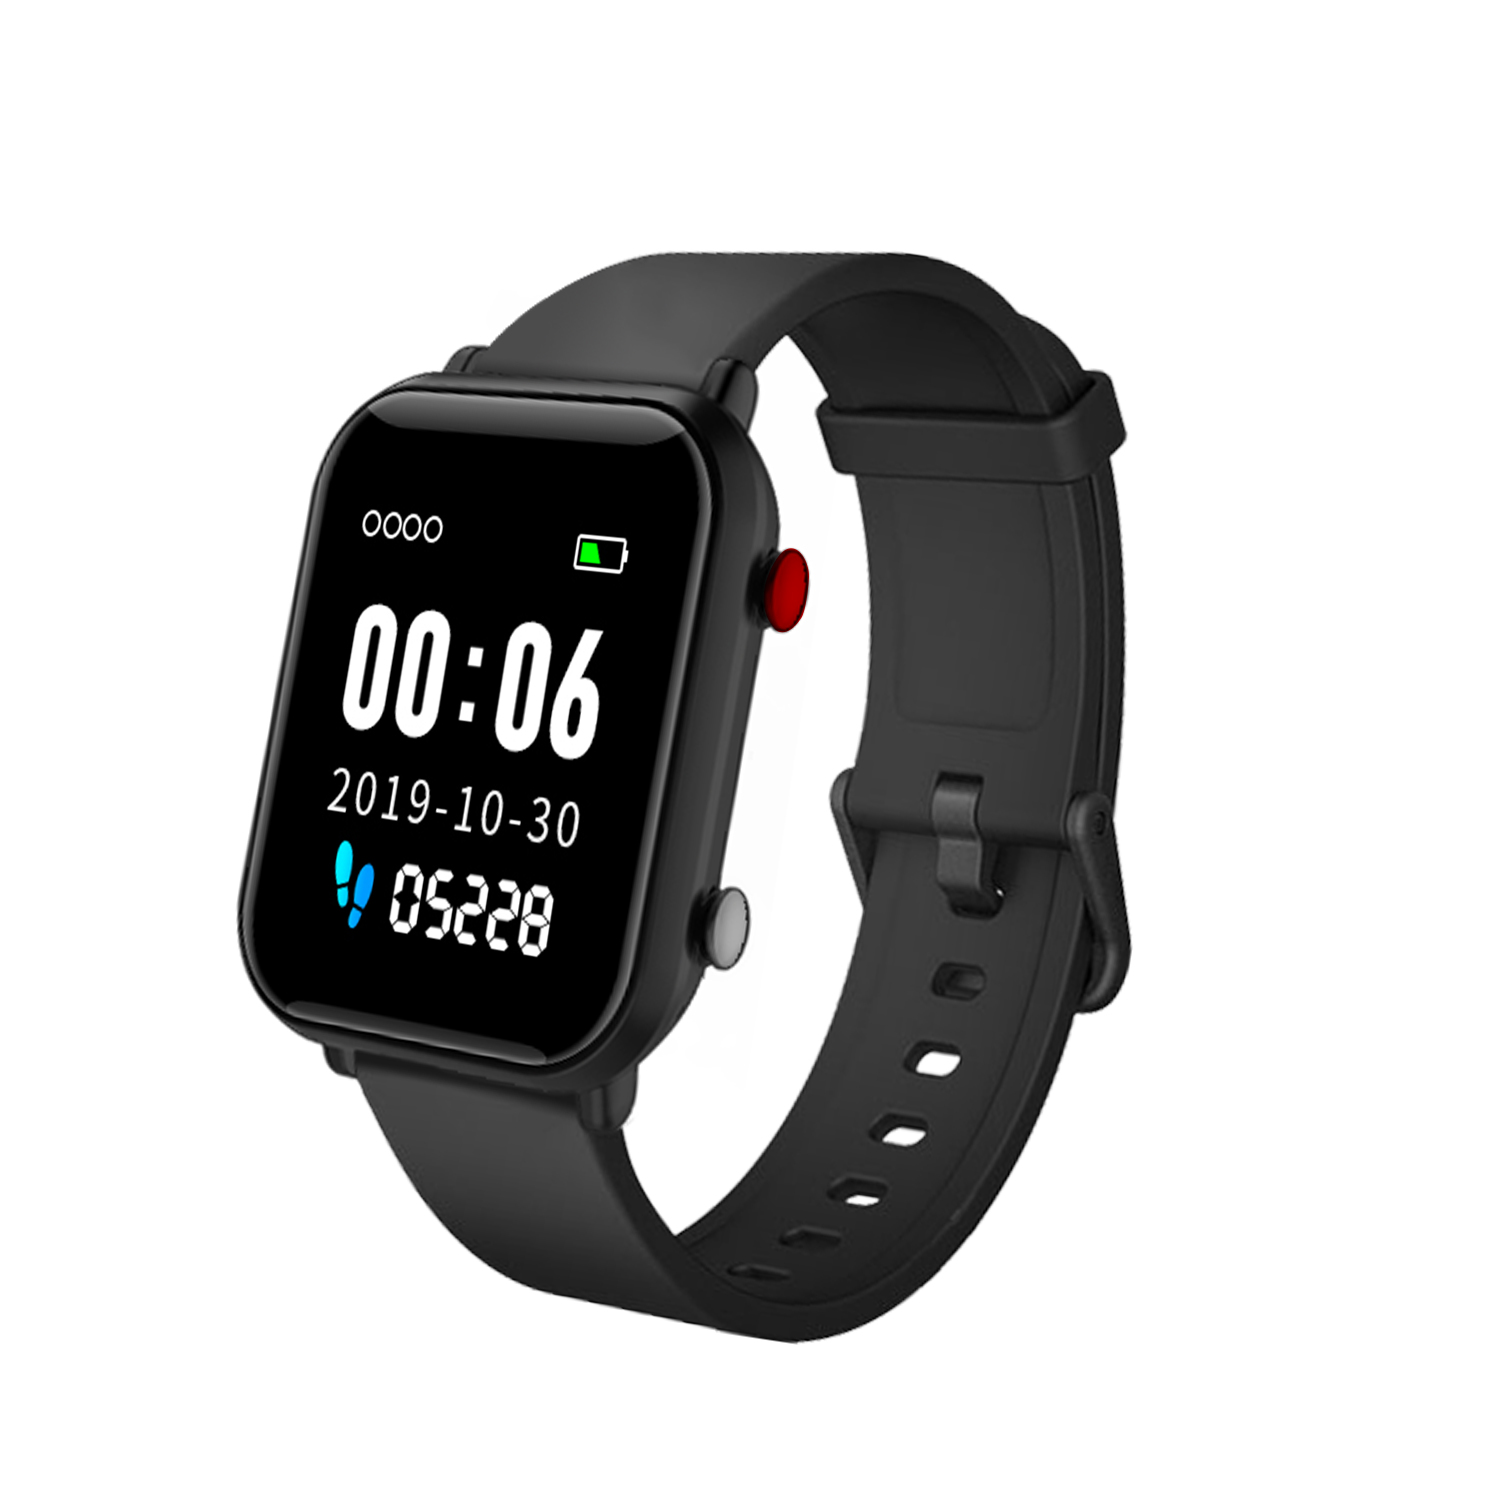 Smart NB-IoT Fitness Watch